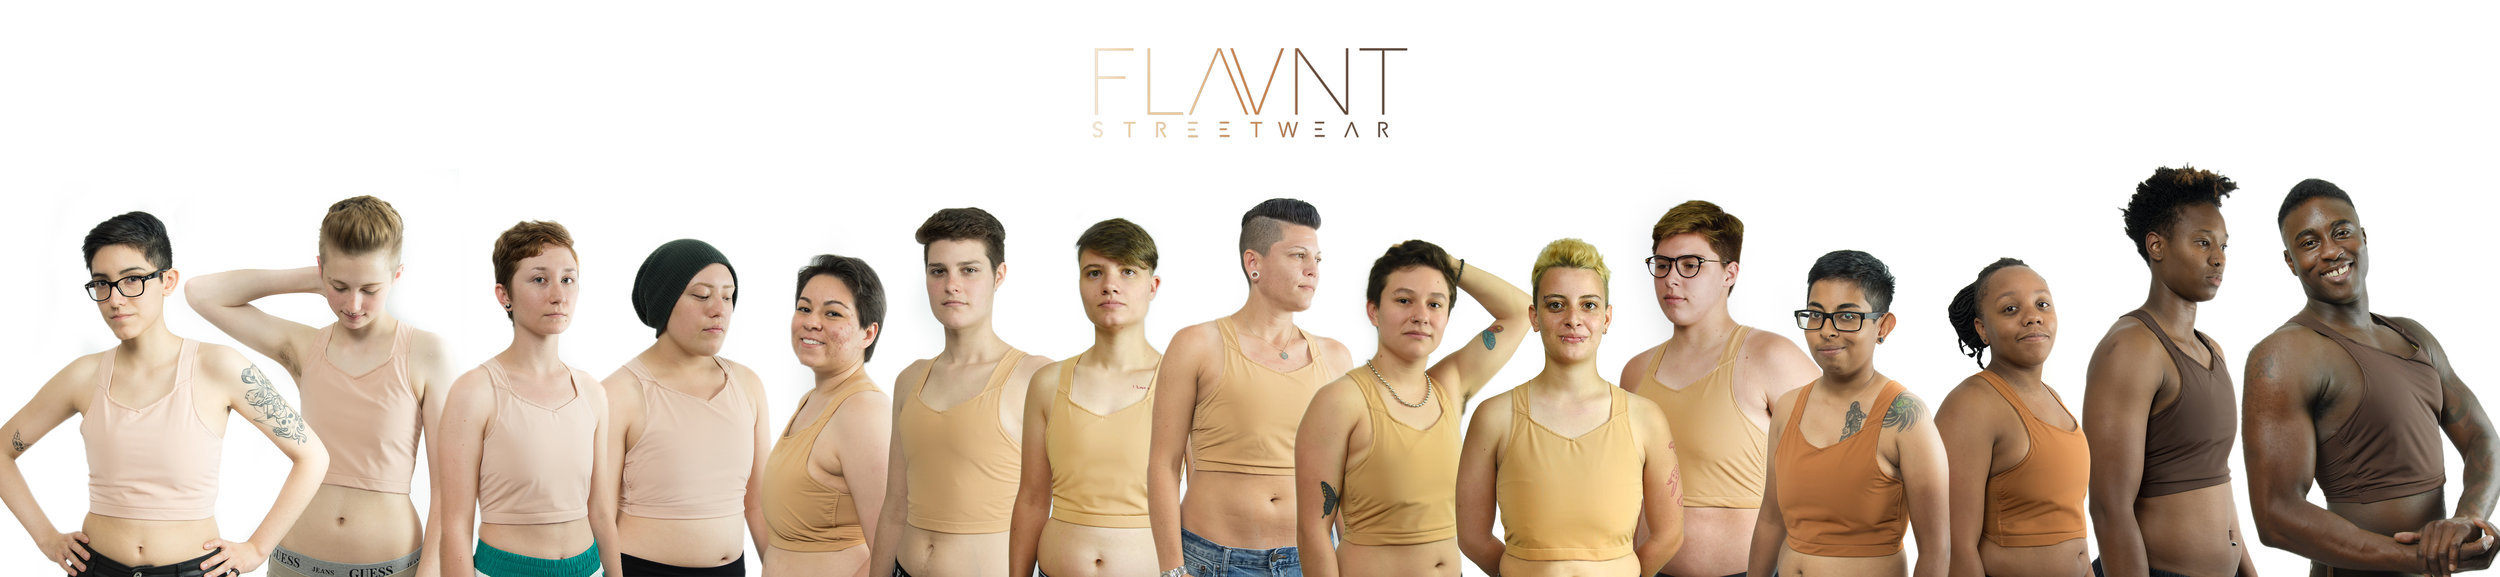 Click the image to enlarge!  Here are our 15 models from the community wearing our 4 initial colors, Rose-Umber.